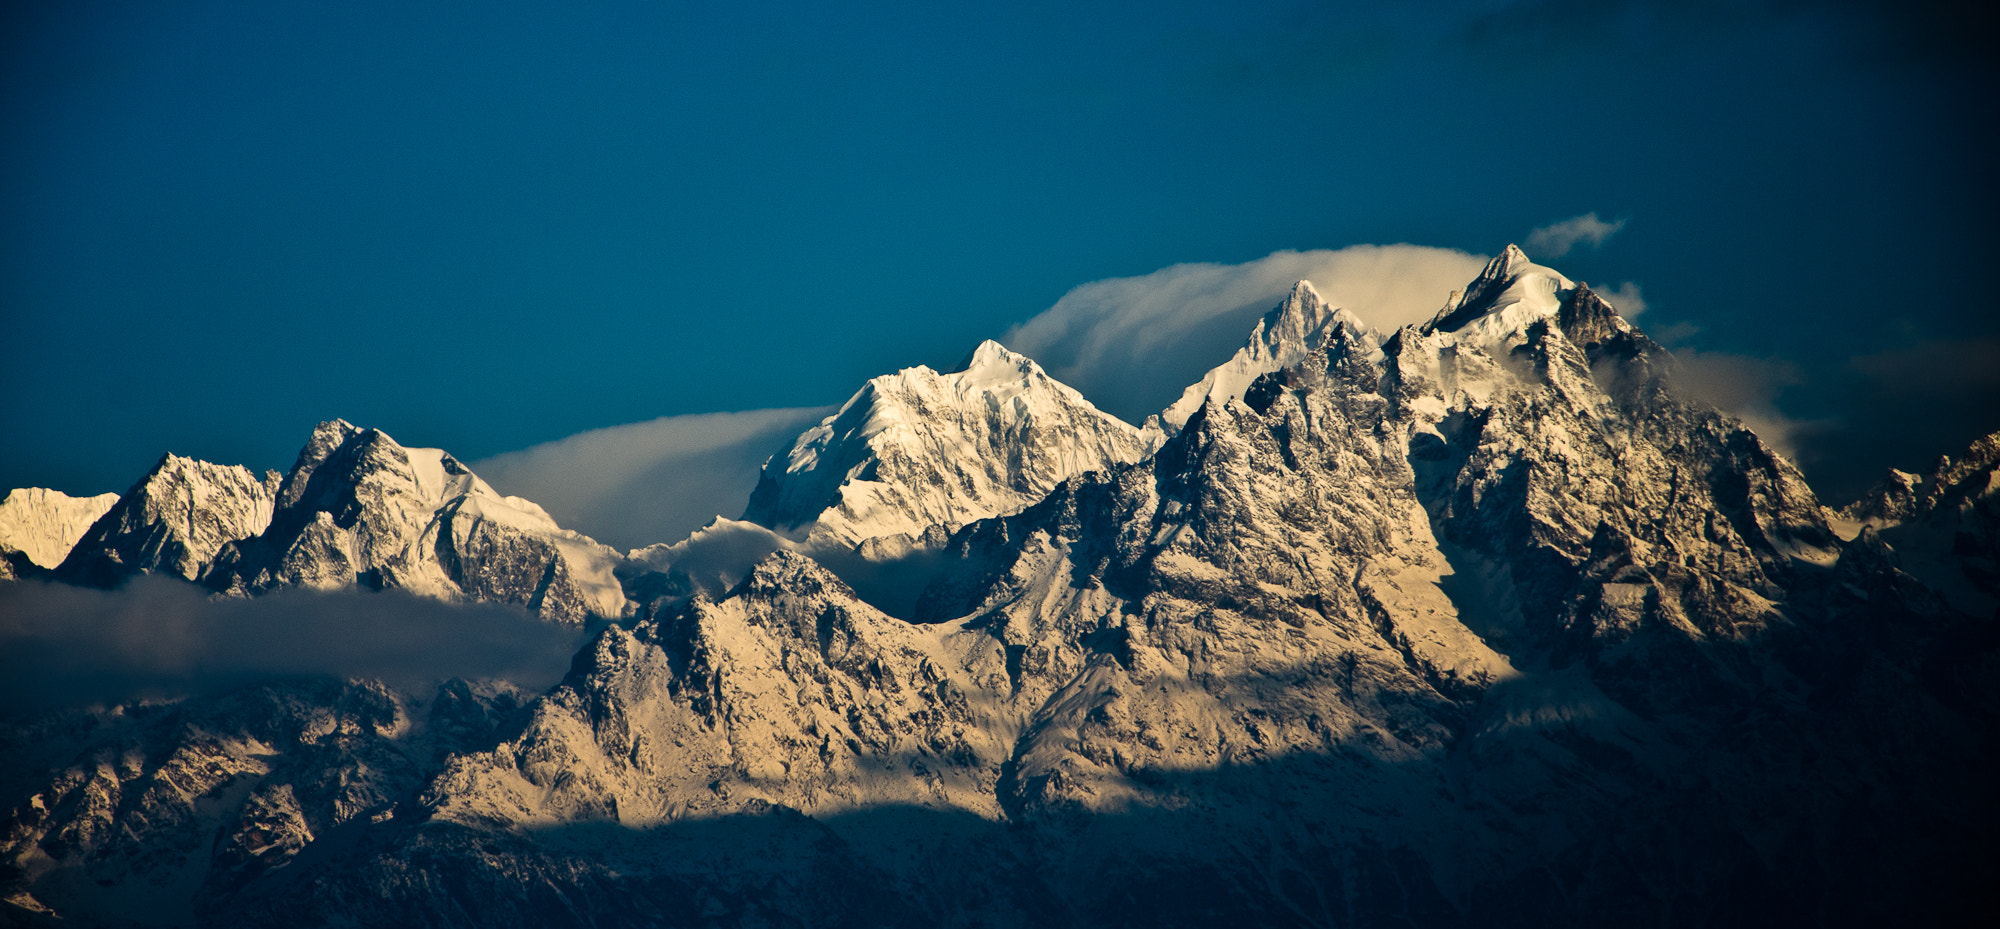 Photograph Portait of a Mountain! by Anirban Chakladar on 500px